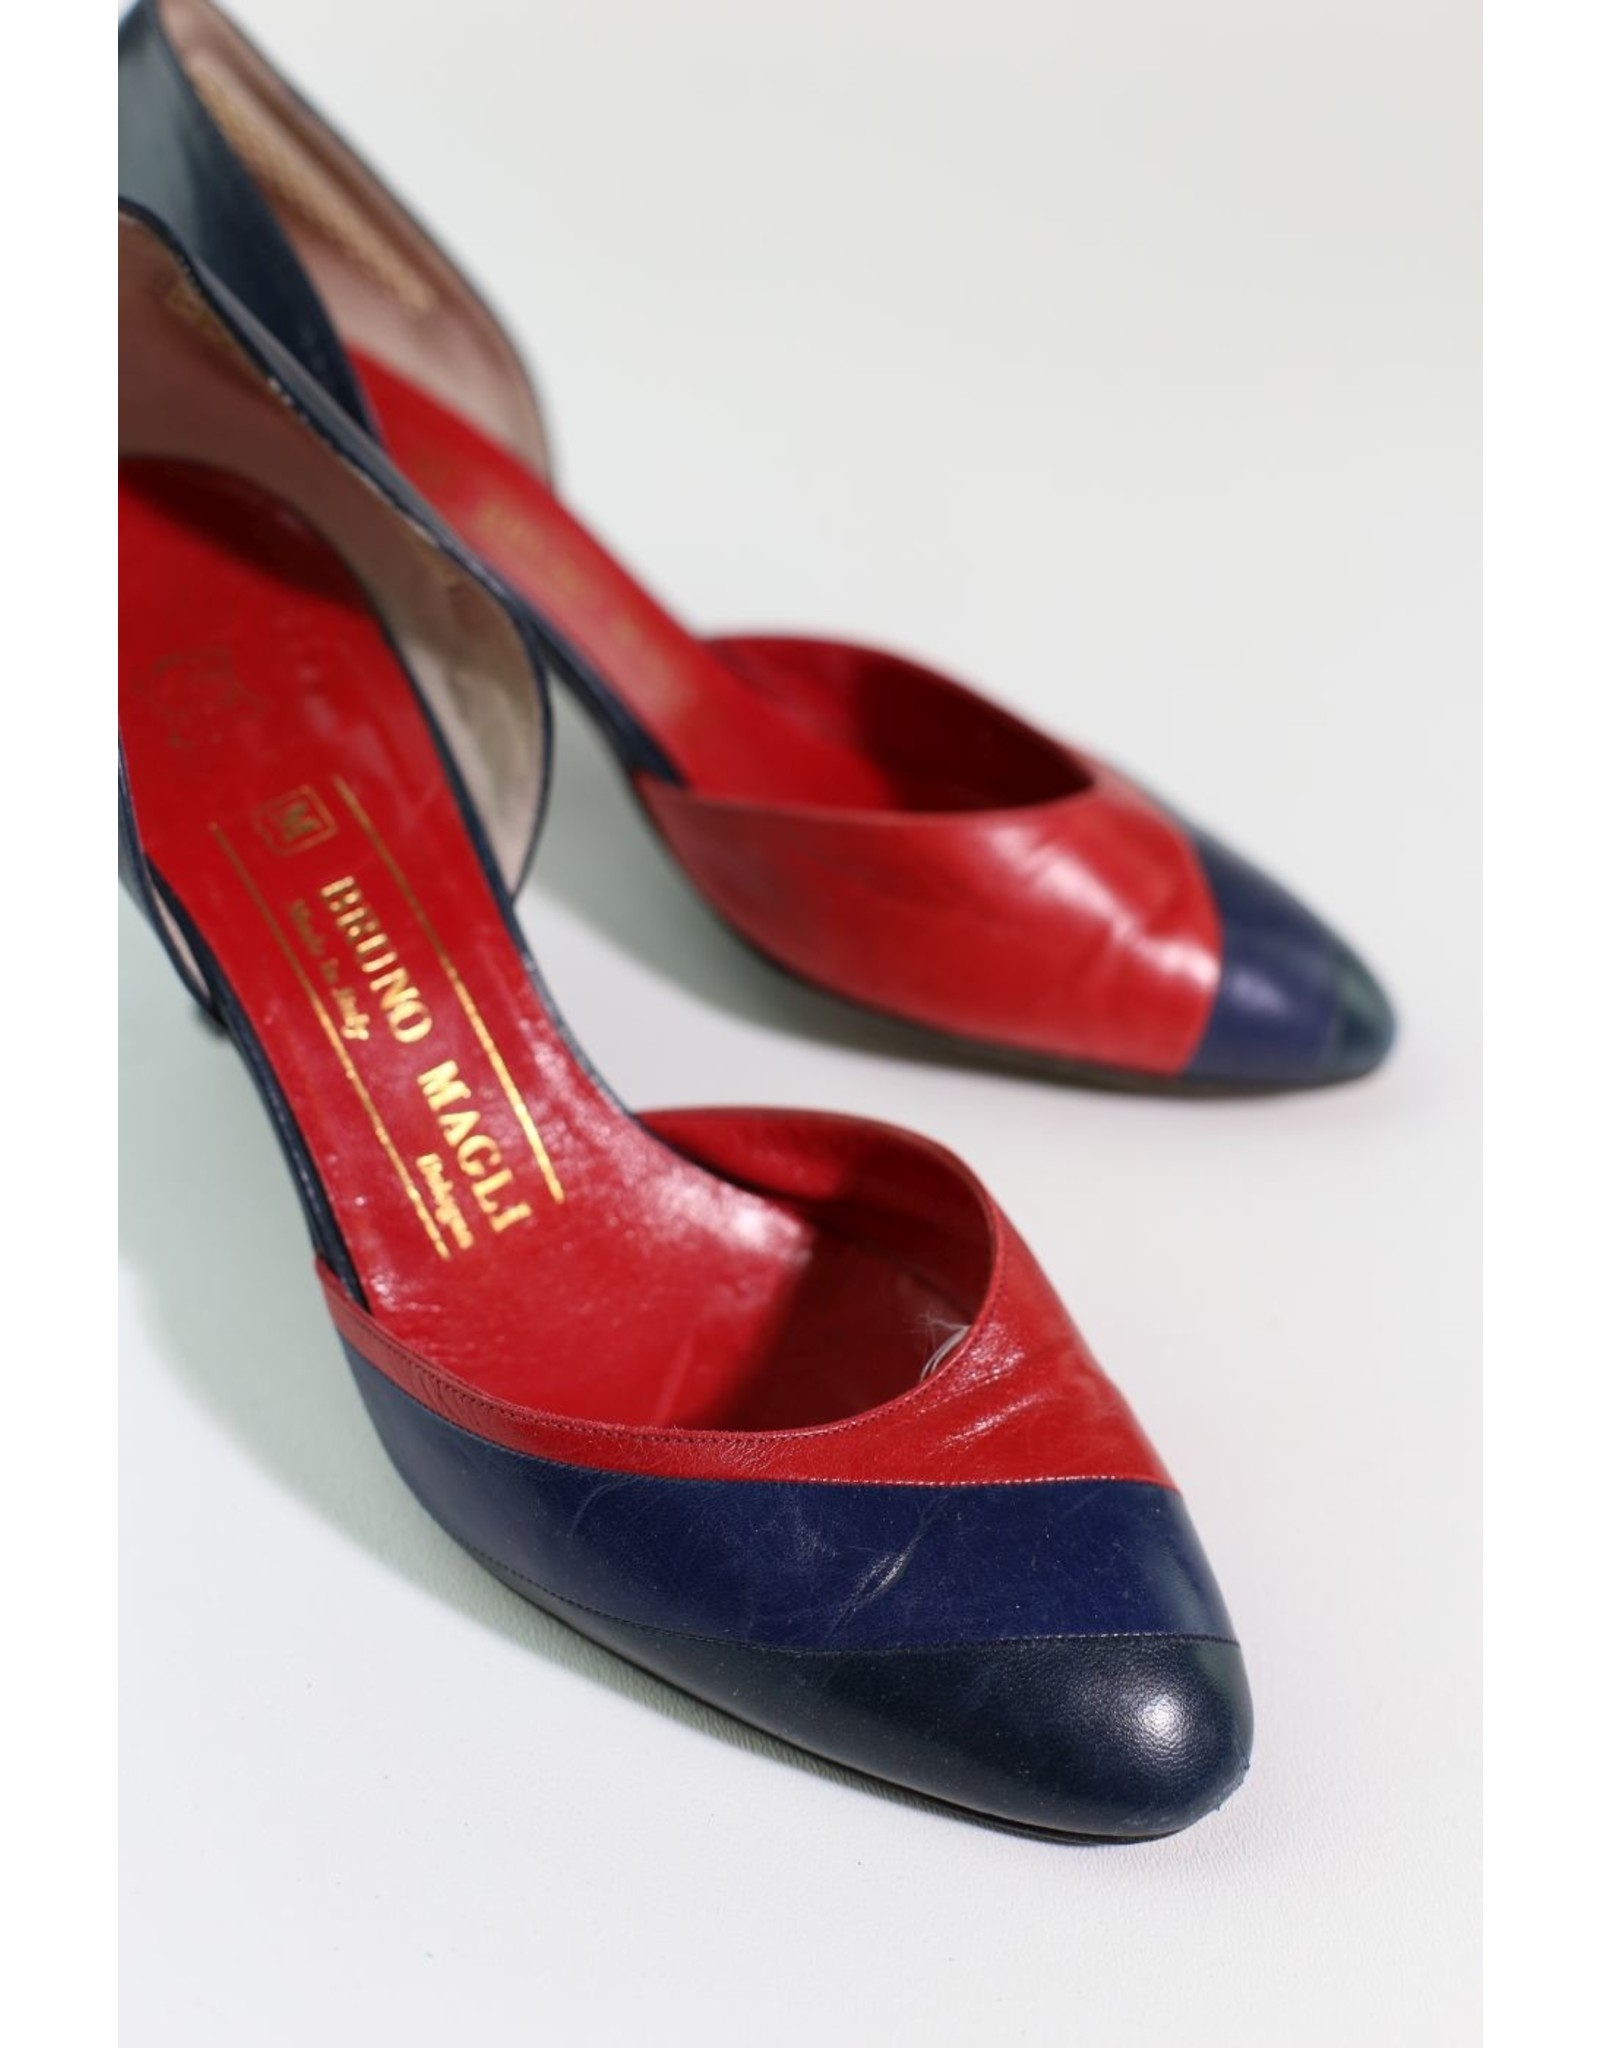 1980's Navy and Red Bruno Magli Heels